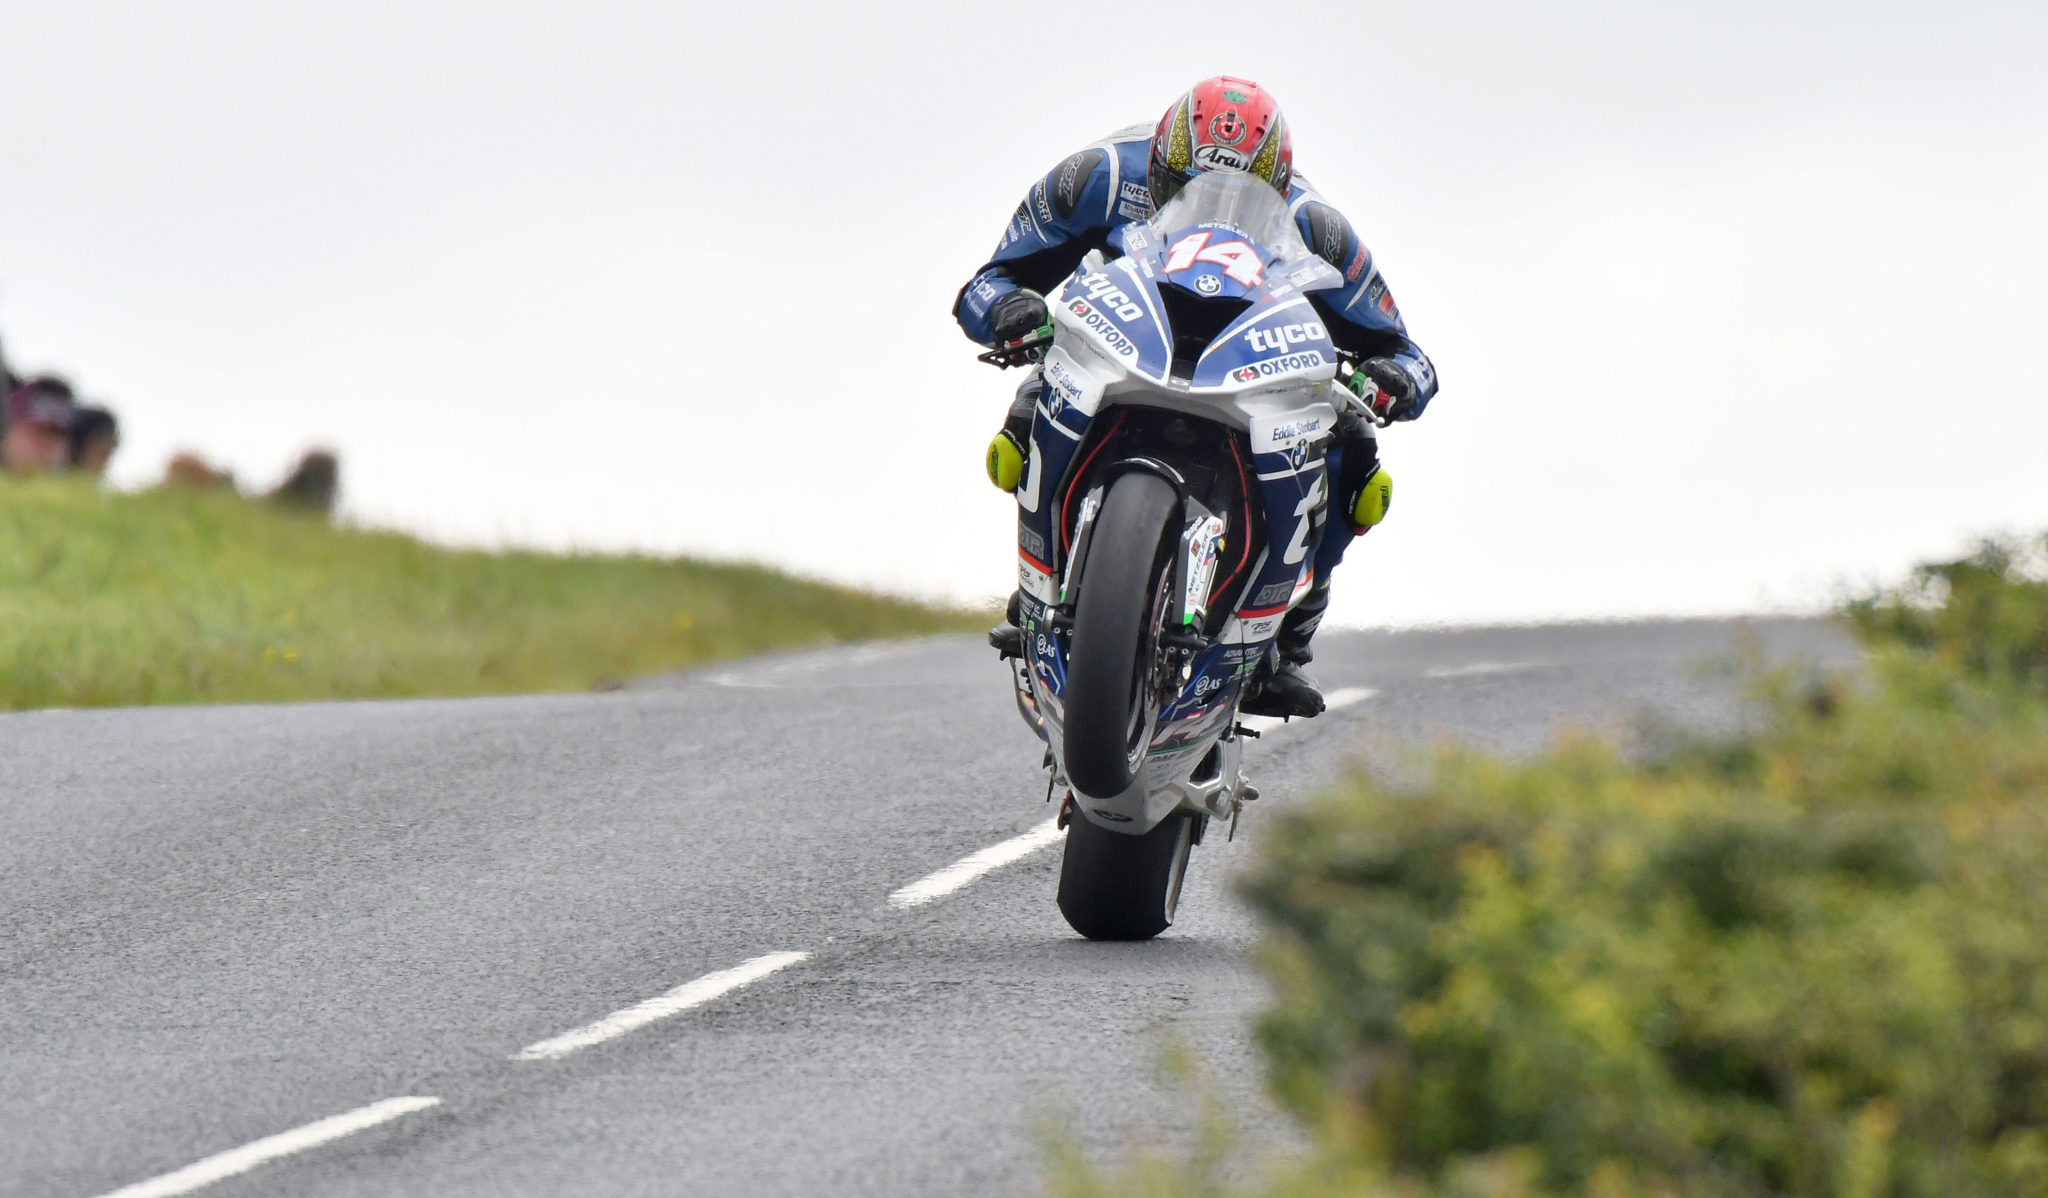 Remembering Dan Kneen